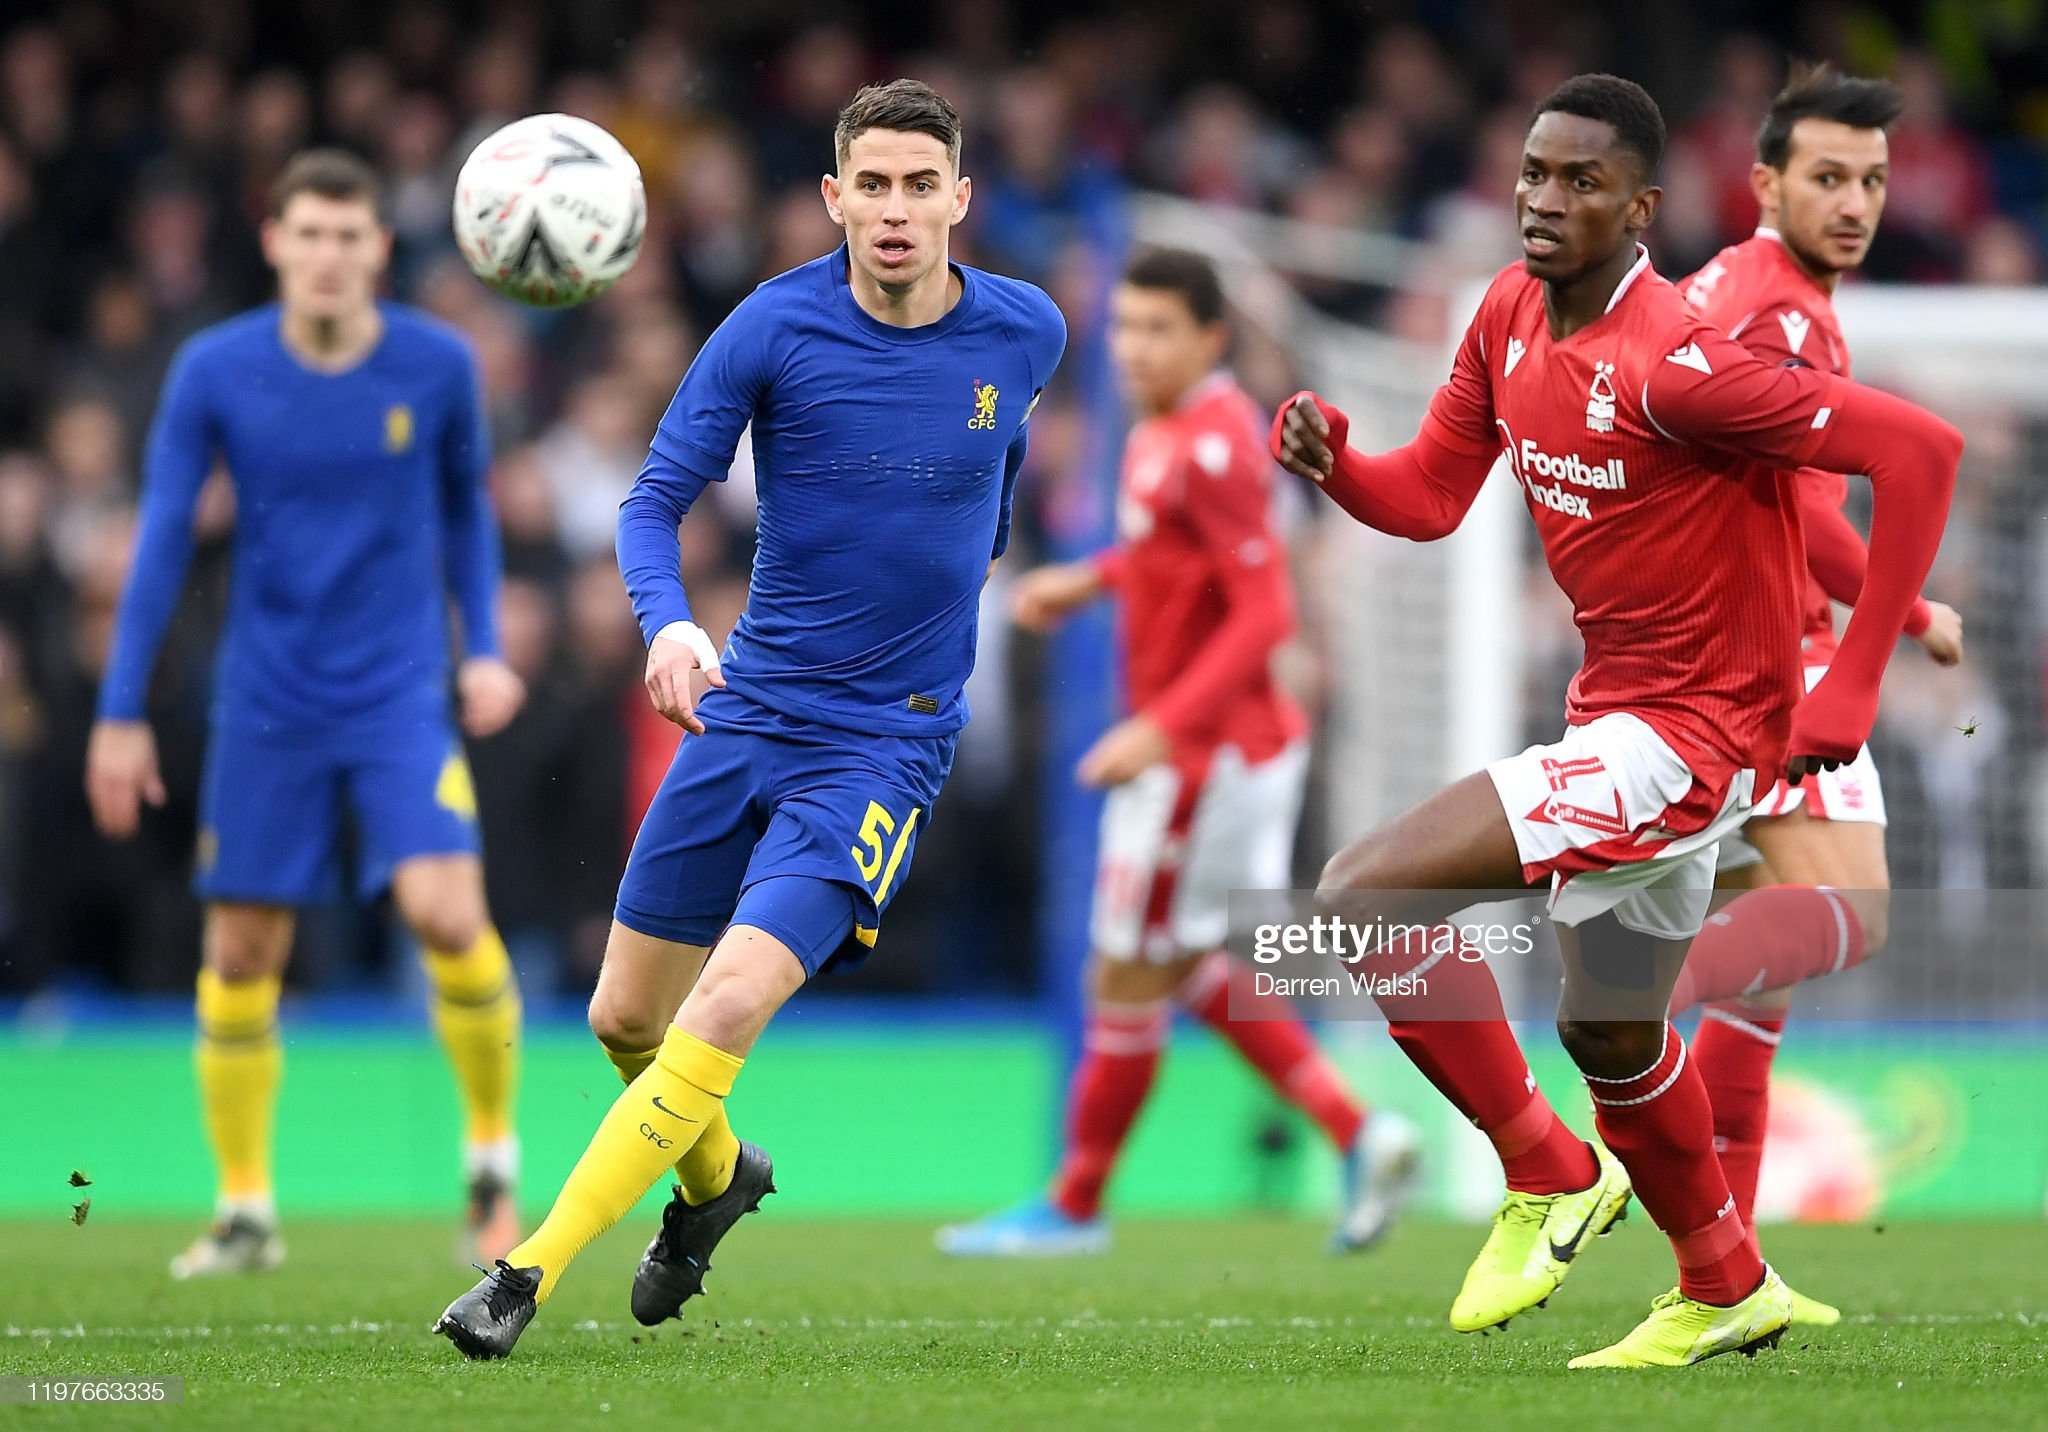 Chelsea FC v Nottingham Forrest - FA Cup Third Round : News Photo